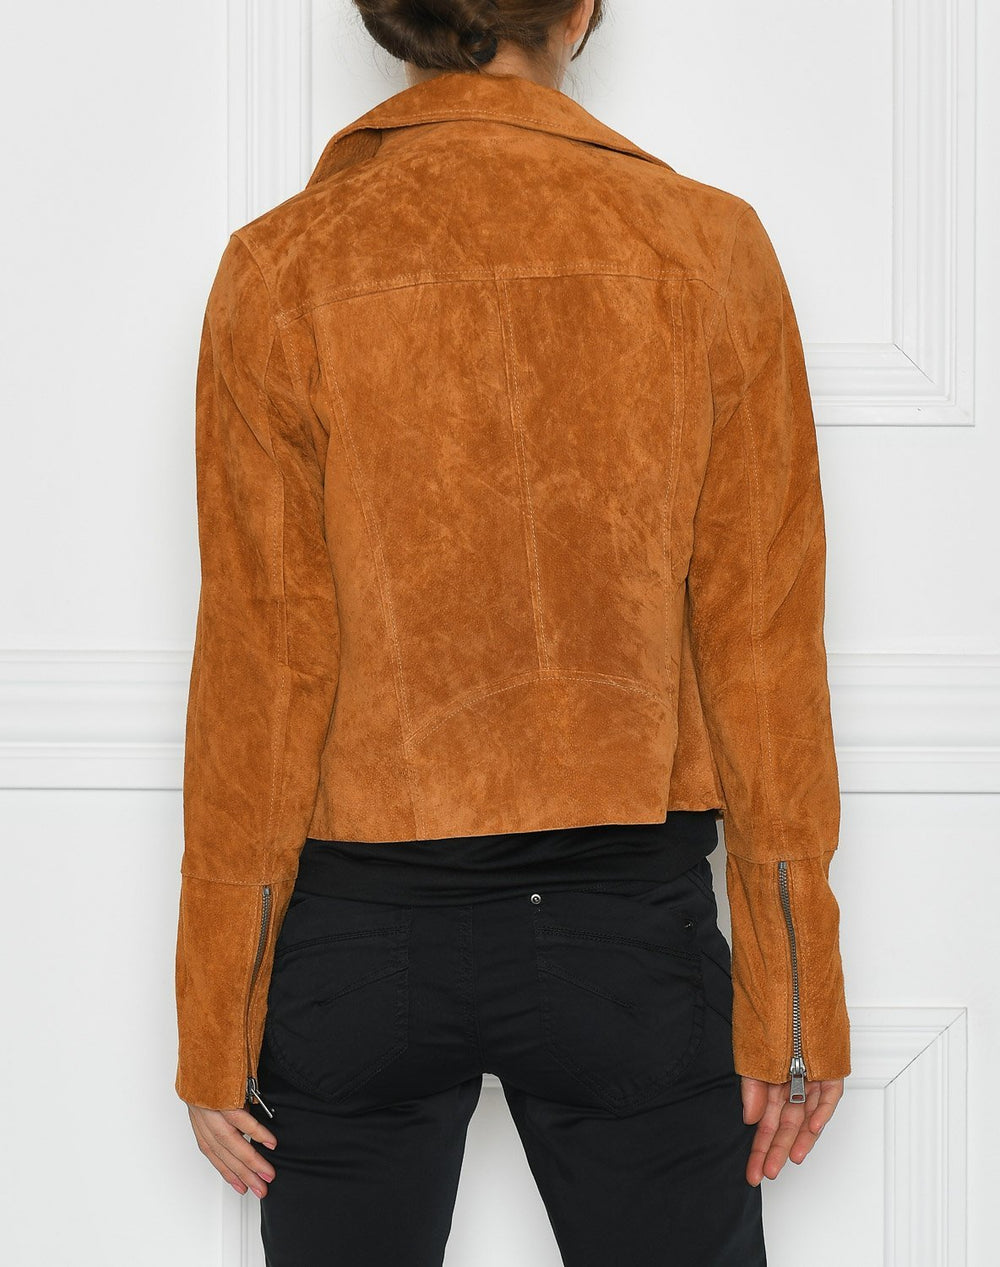 B.young BYcora biker jacket suede safari brown - Online-Mode